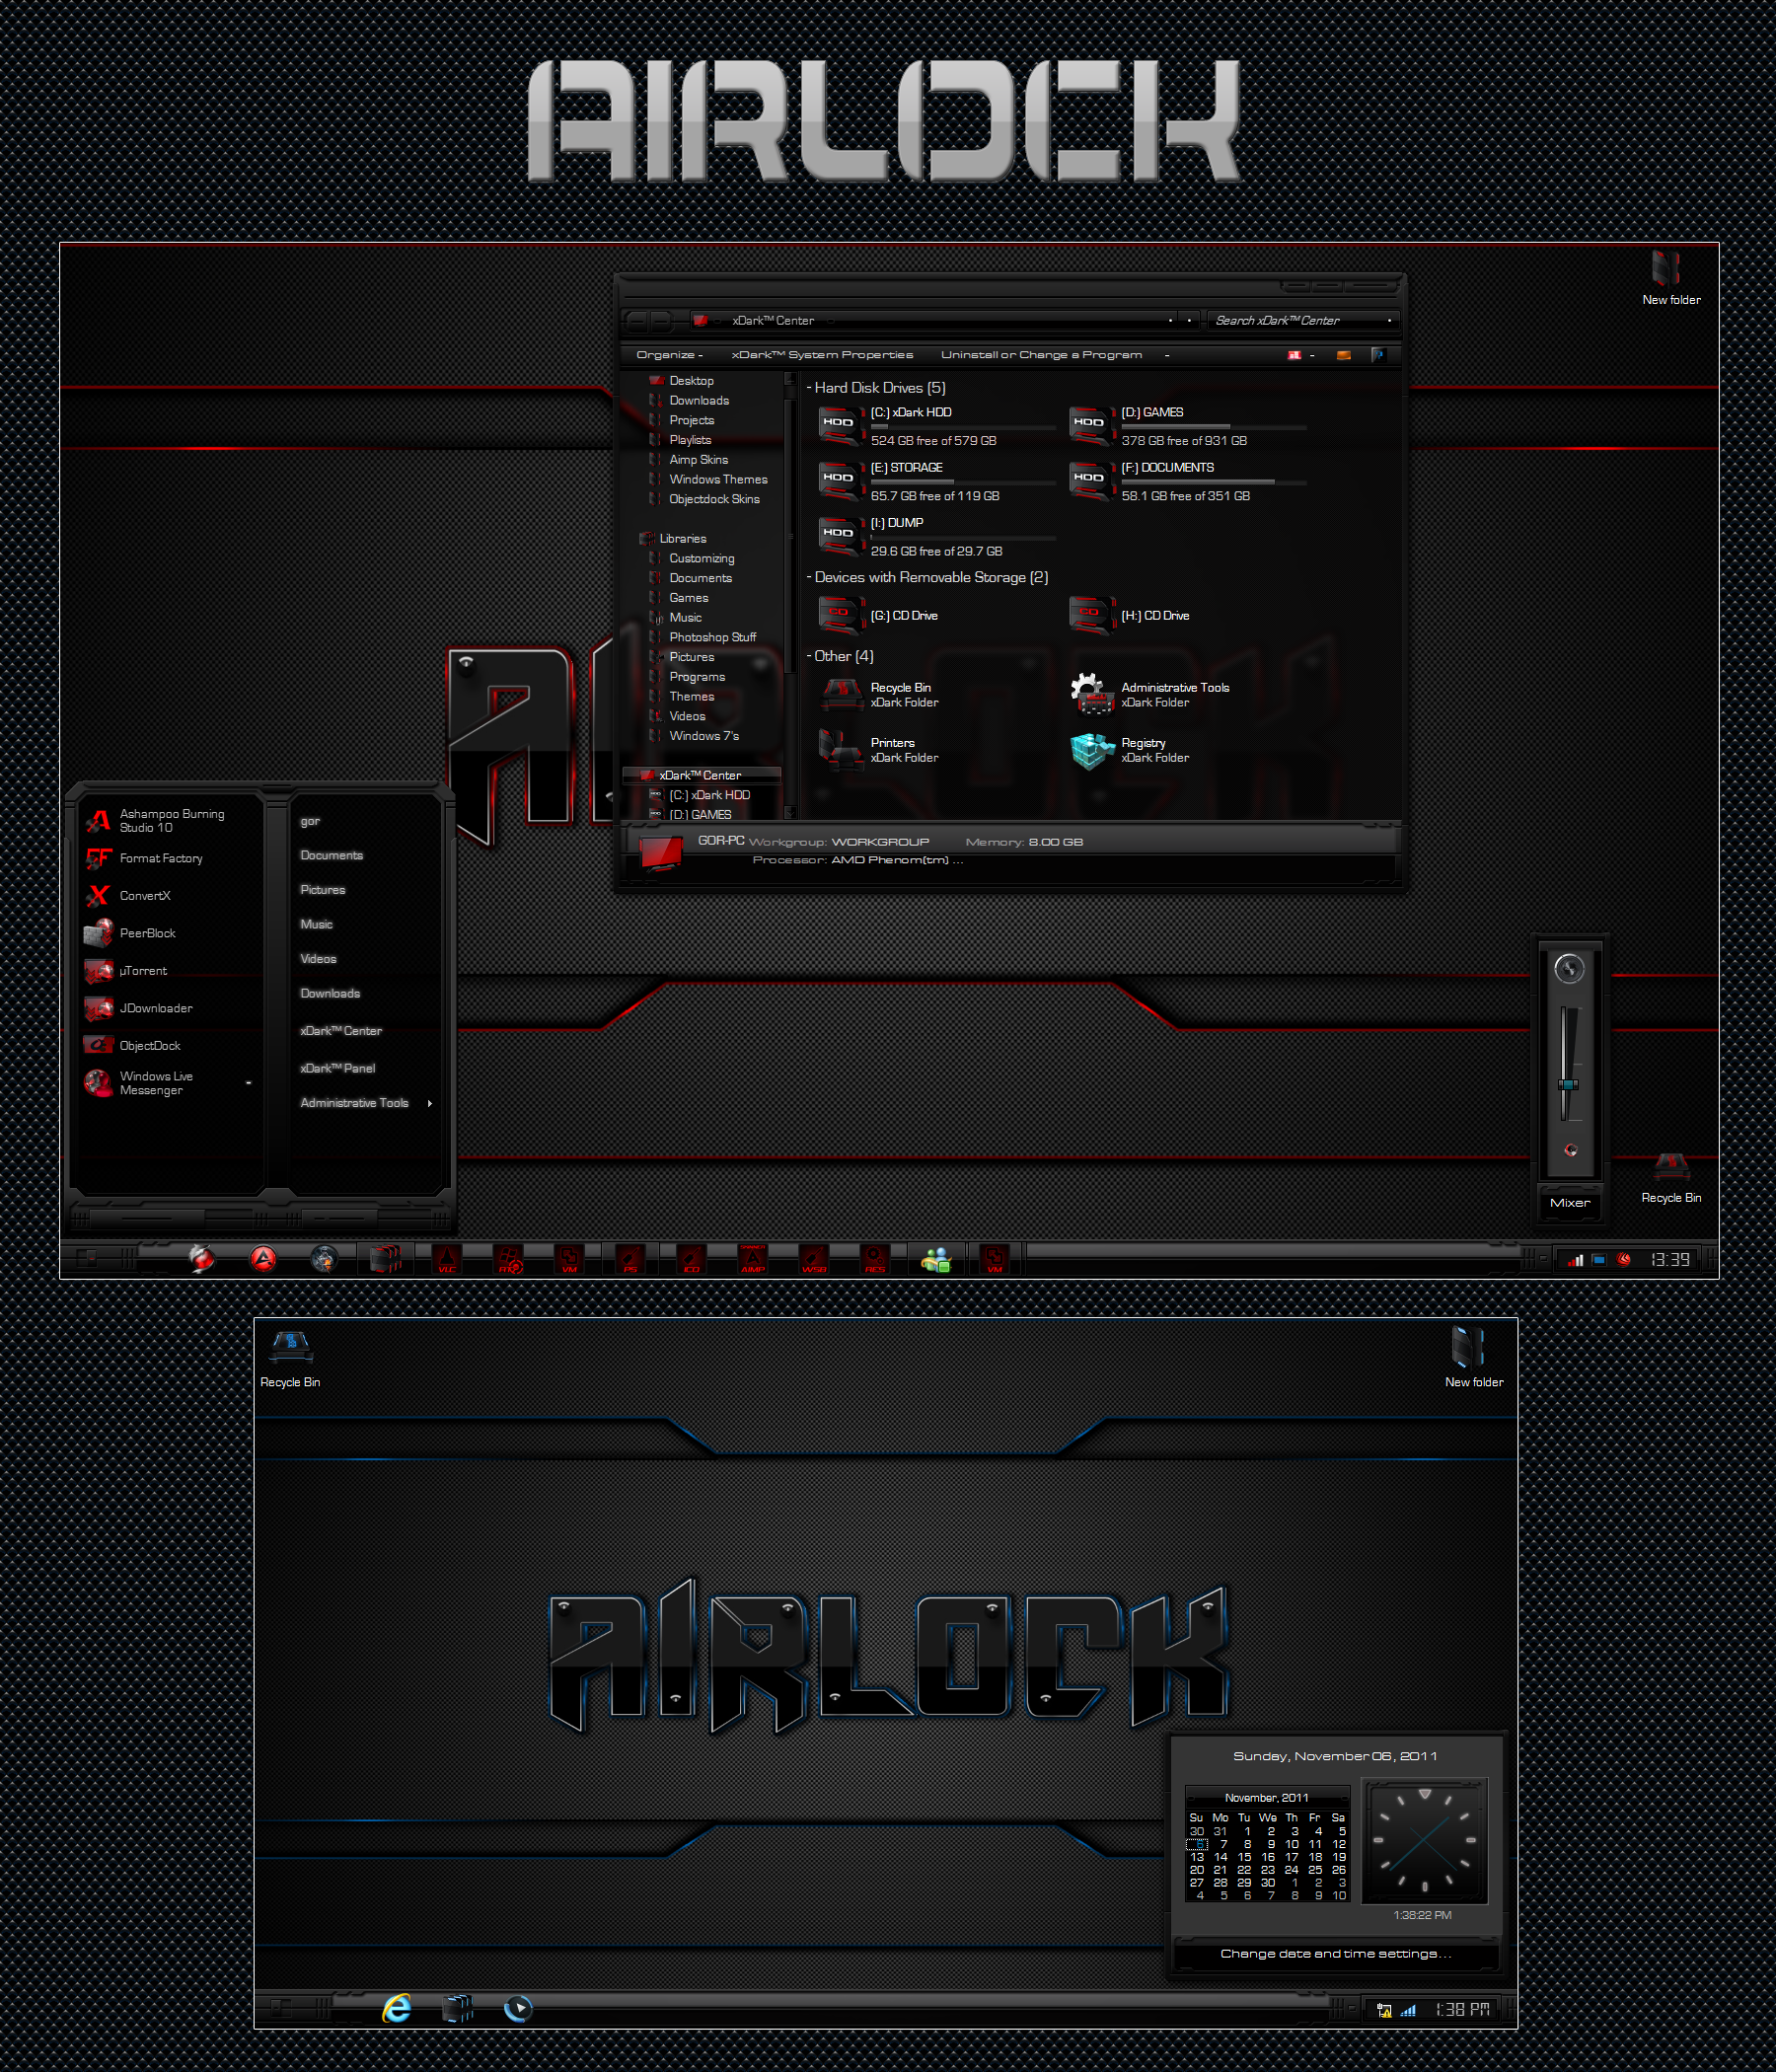 Airlock Blue and Red for Windows 10 Build 1903-21h2